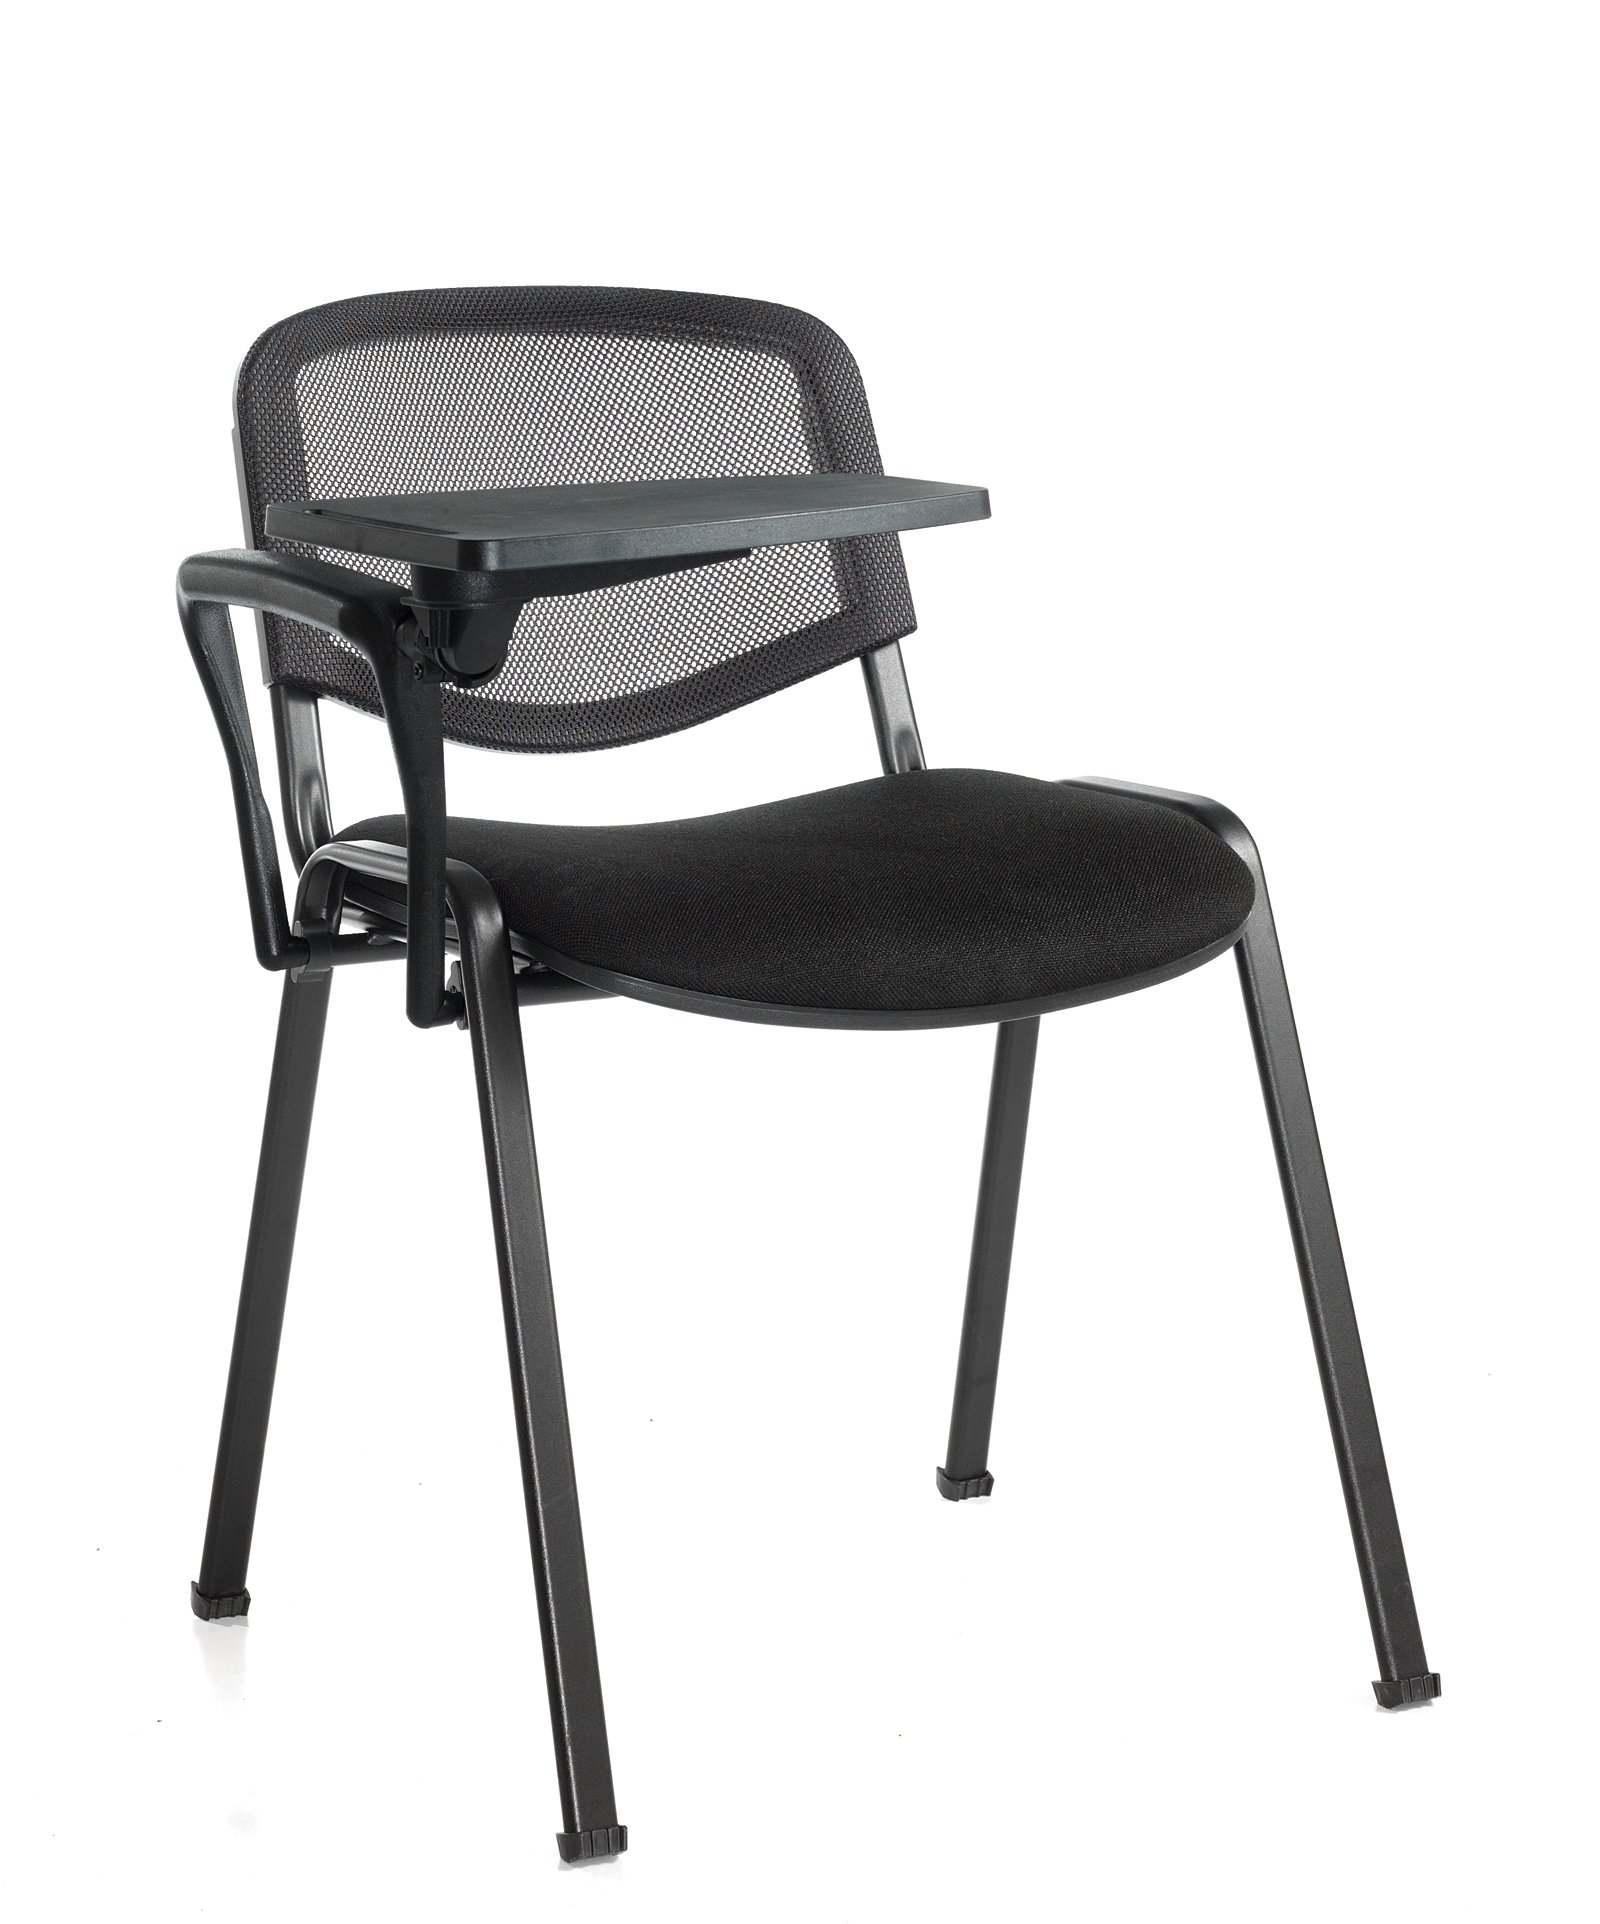 taurus mesh stacking chairs with writing tablet price per box of 4